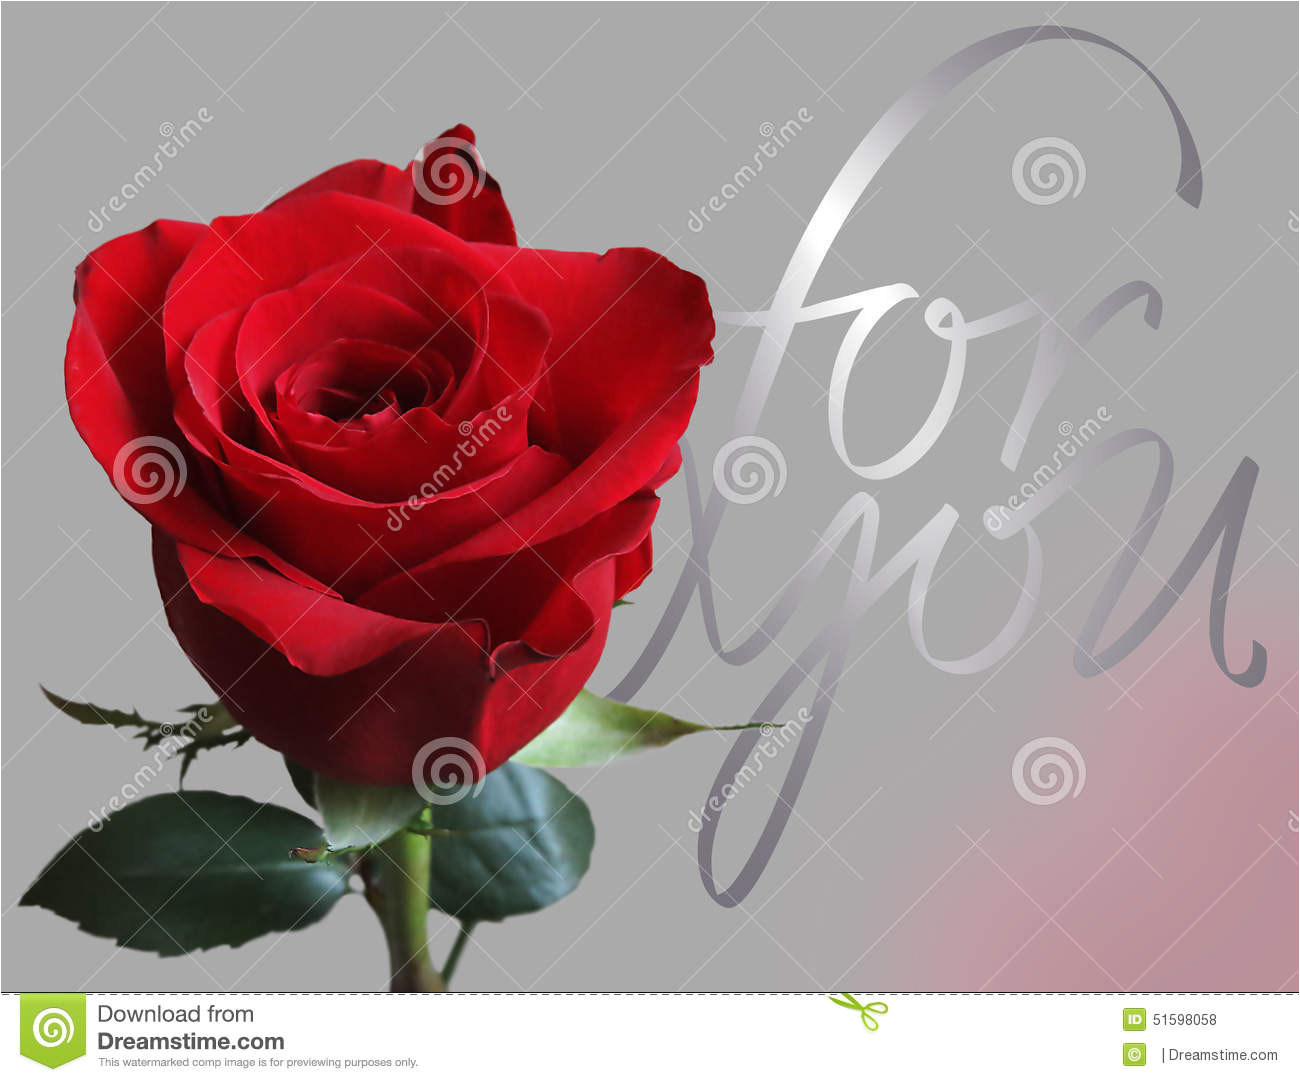 greeting card rose any kind events like valentine s mother s father s women s day name days birthdays 51598058 jpg